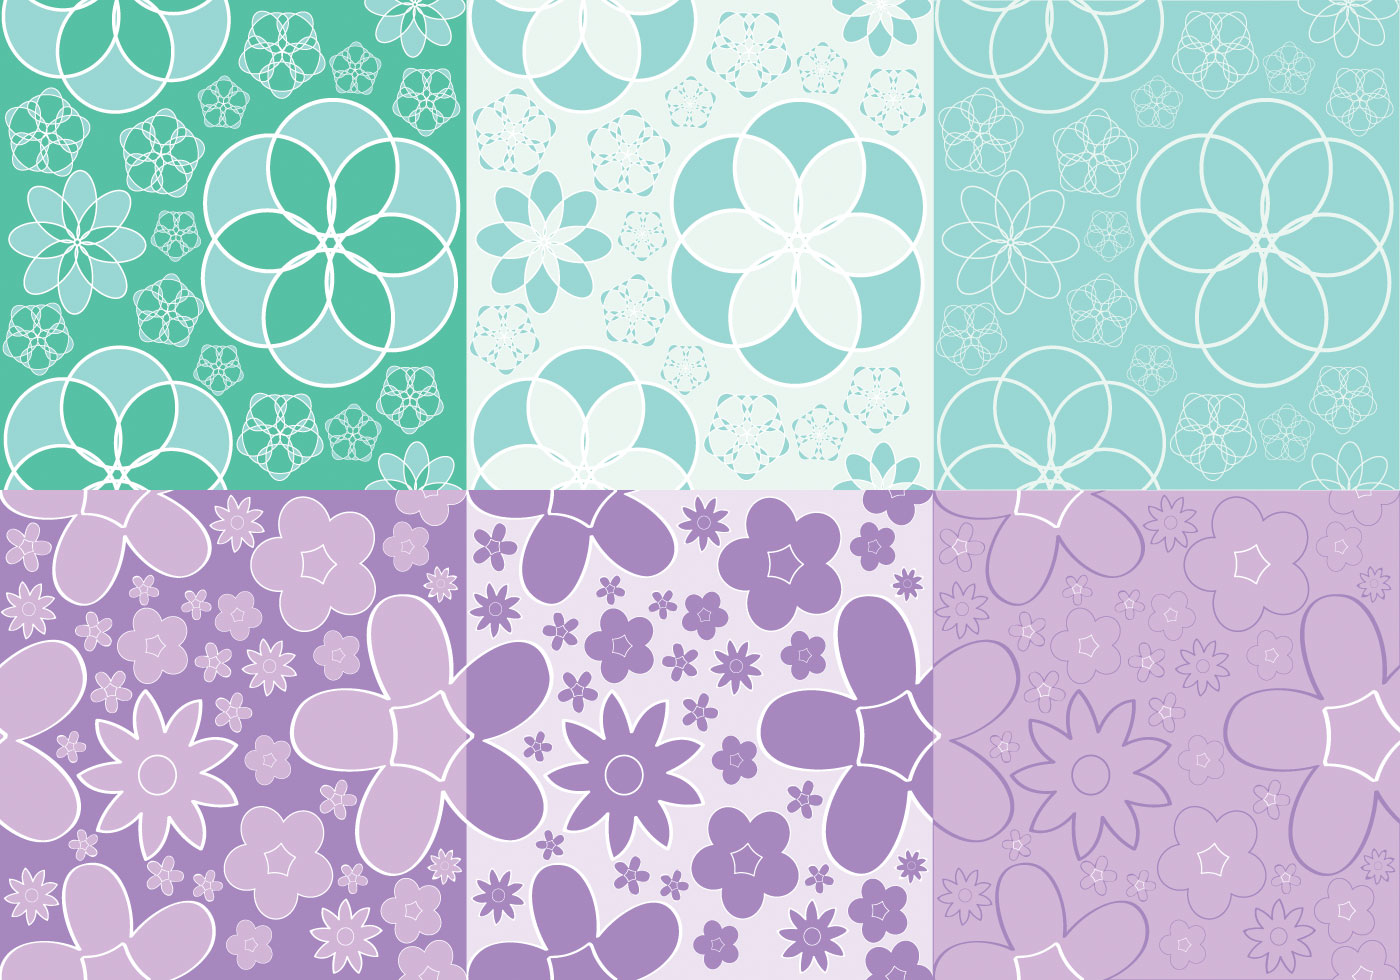 Girly Flowers Pattern Vectors Download Free Vector Art Stock Graphics &amp